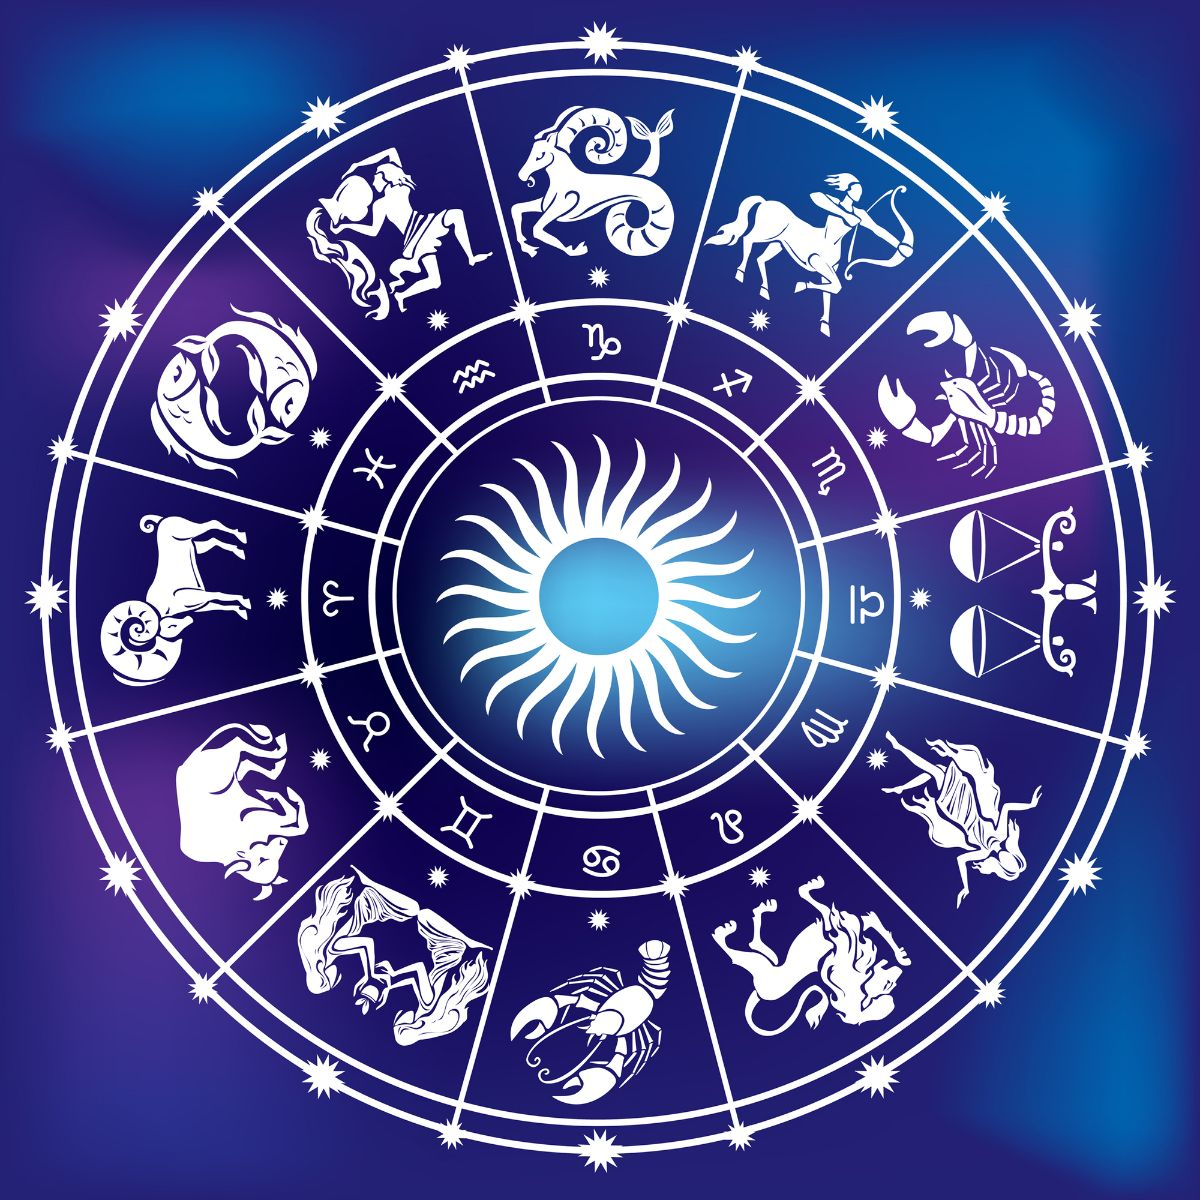 Astrology signs in circle